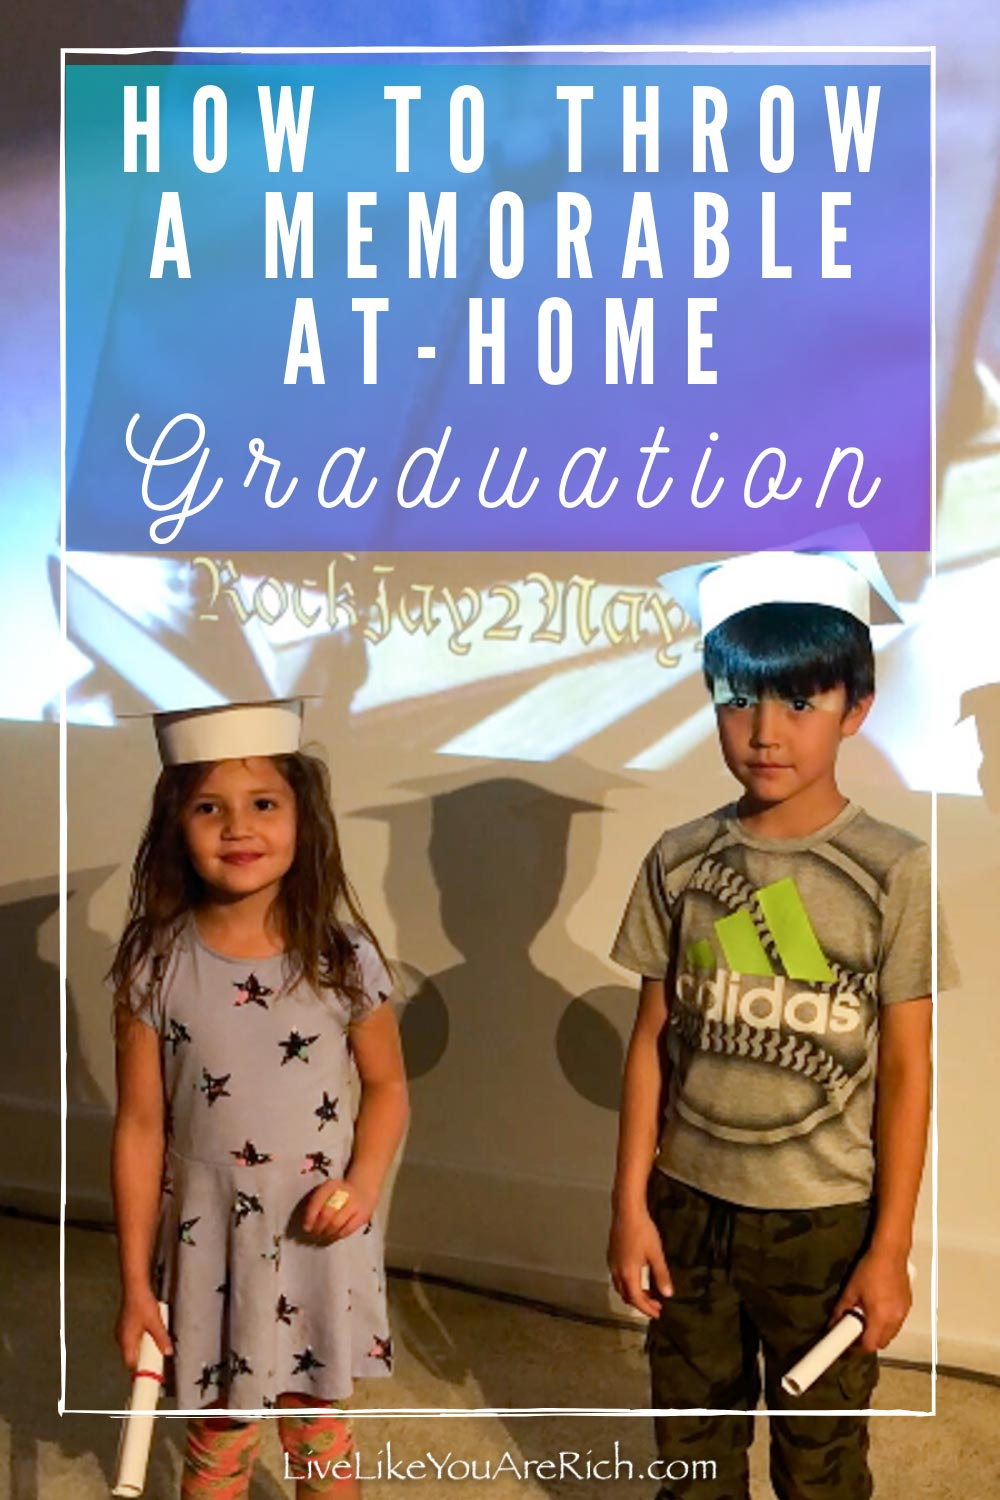 Since the stay-at-home order, I have wanted to keep the kids learning and productive. They did such a great job of completing all of their tasks each day. To celebrate their hard work and stick-to-itiveness, my husband and I put on an At-Home Graduation. #graduationparty #stayhome